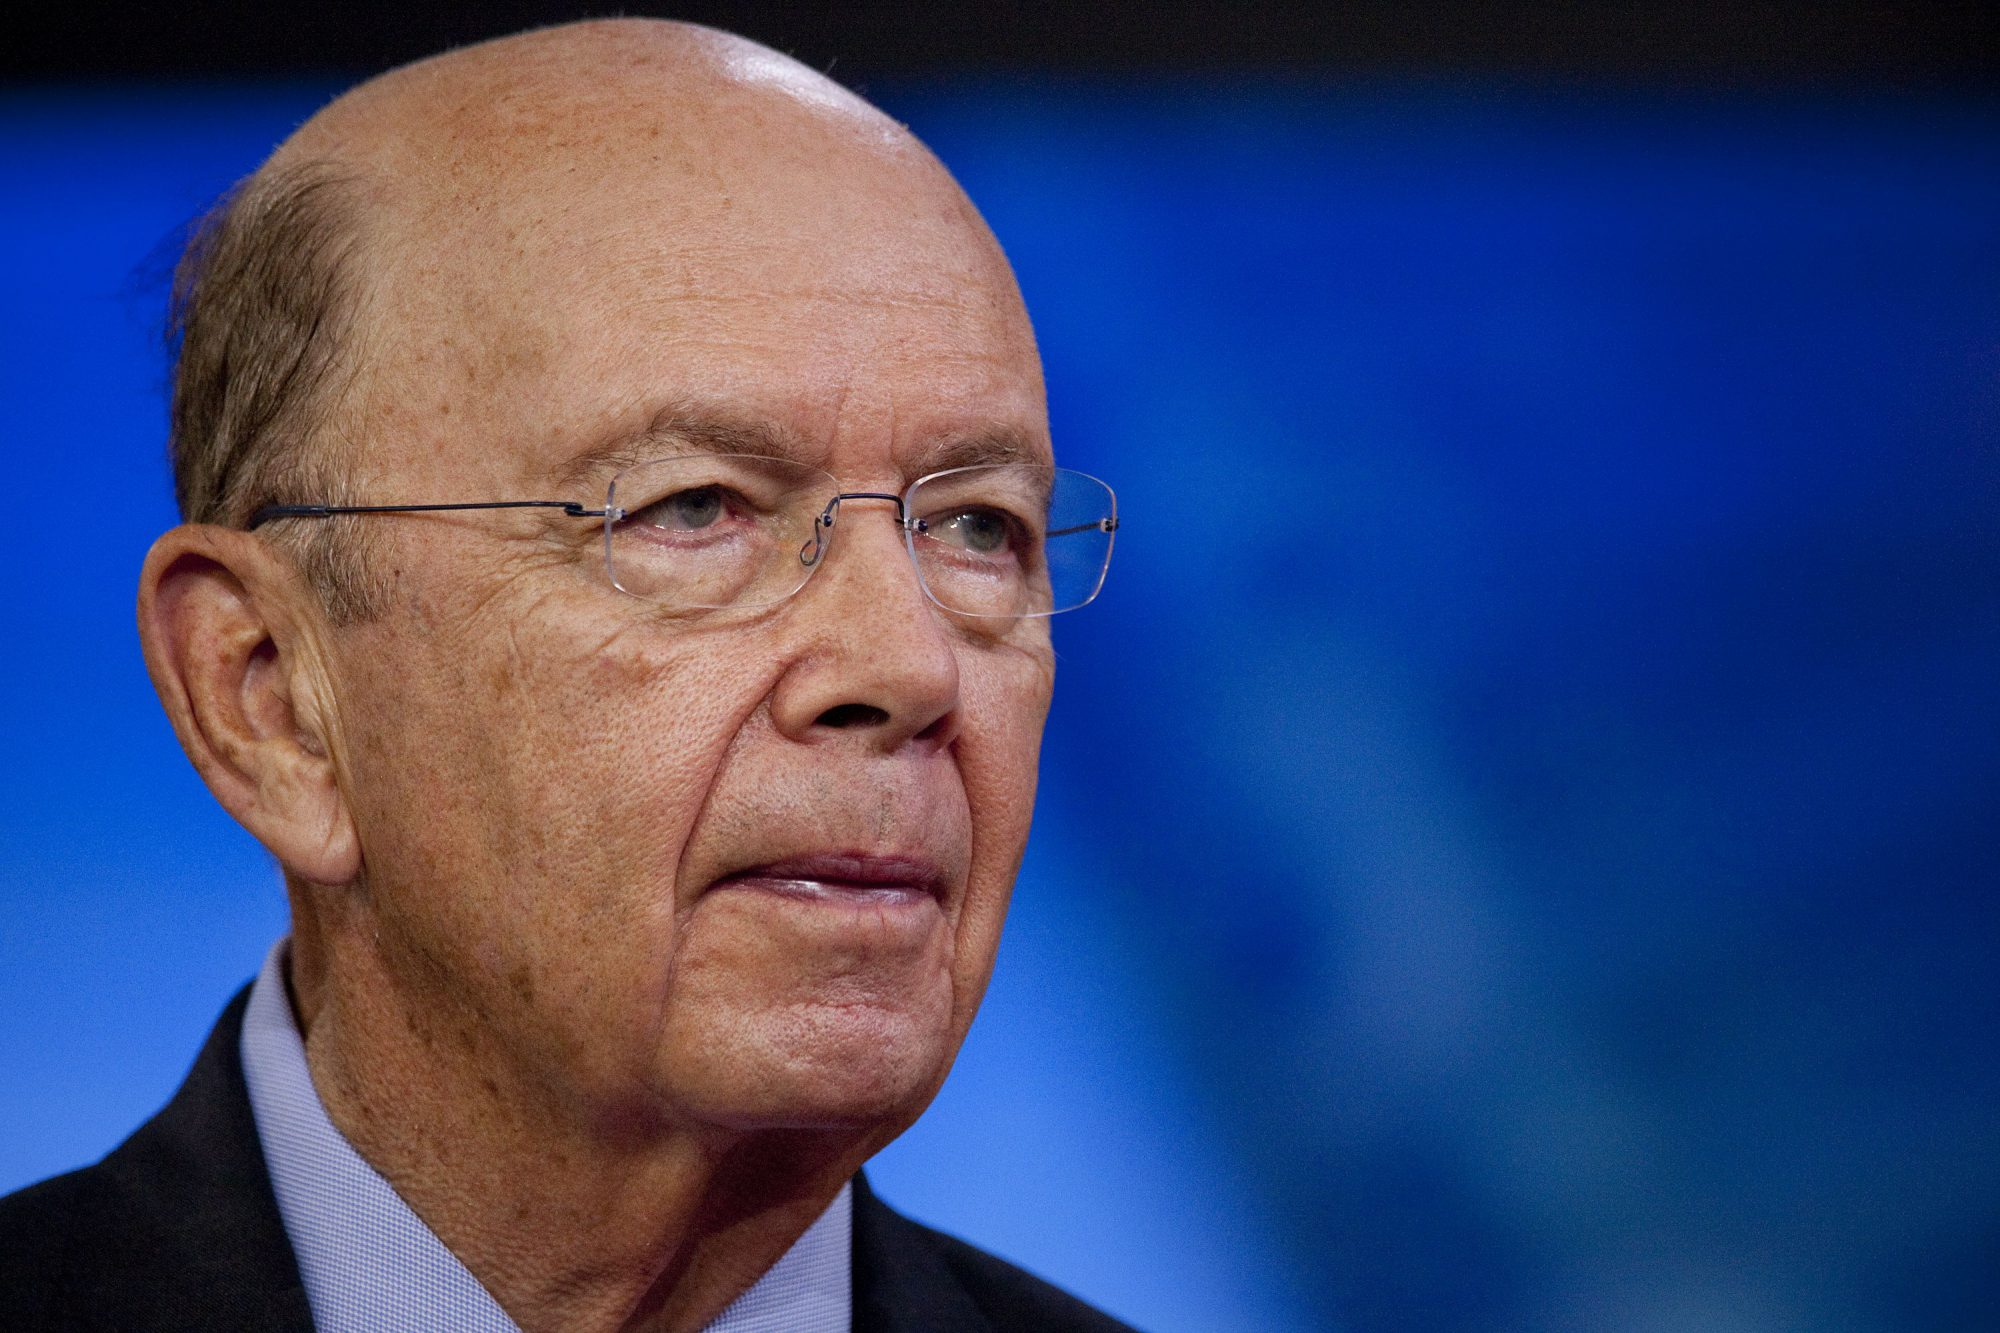 Alexis Tsipras to meet Wilbur Ross in Thessaloniki on the TIF's sidelines